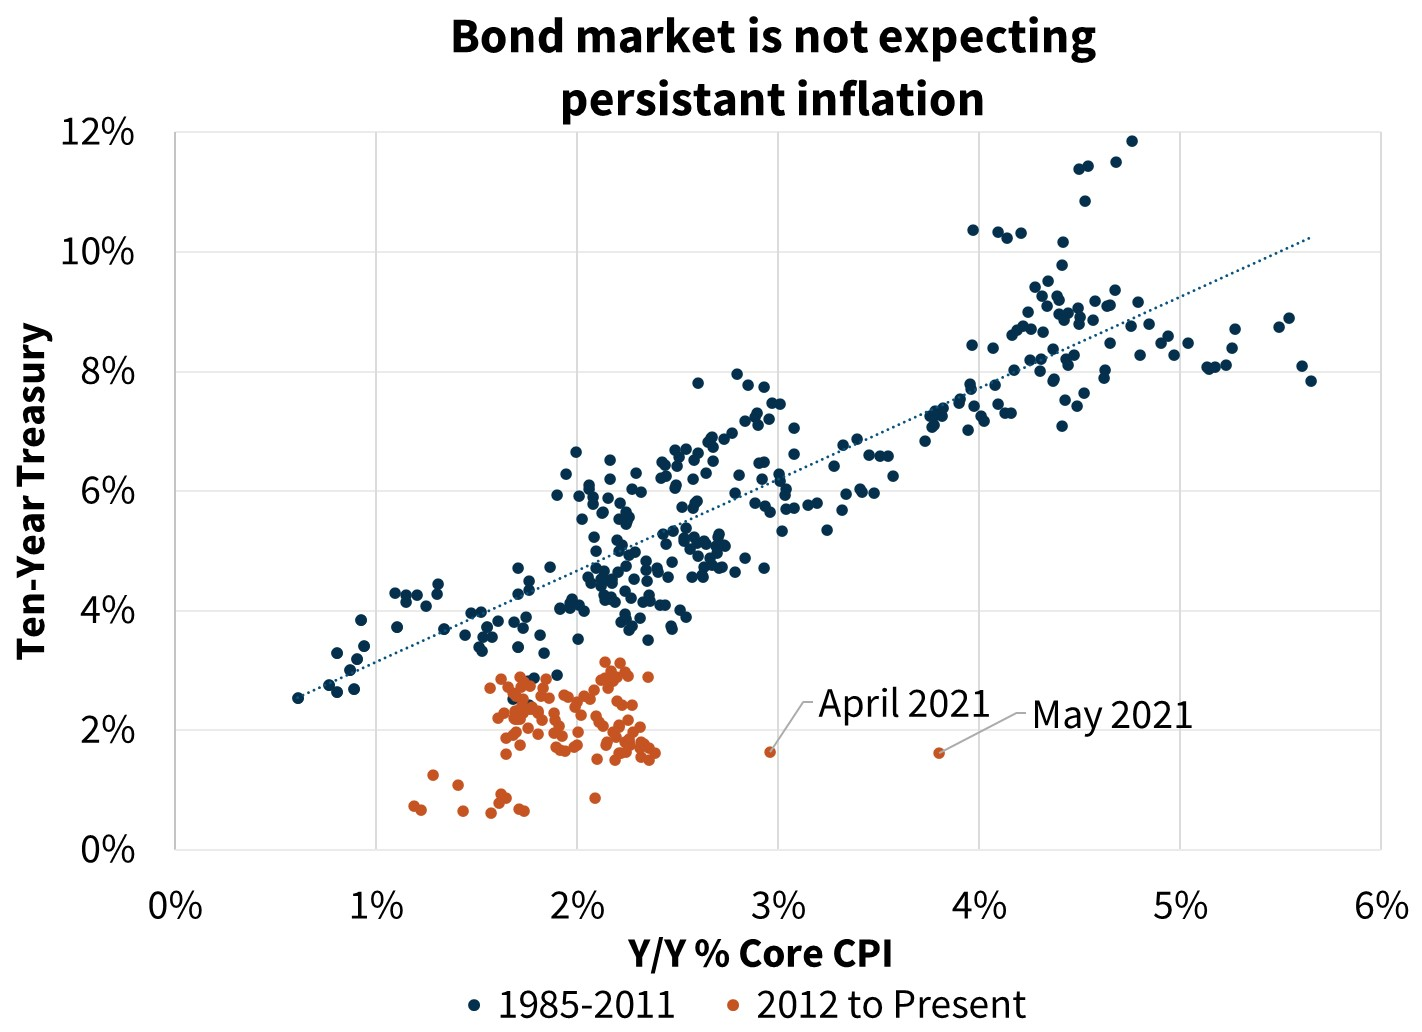 Bond market is not expecting persistent inflation